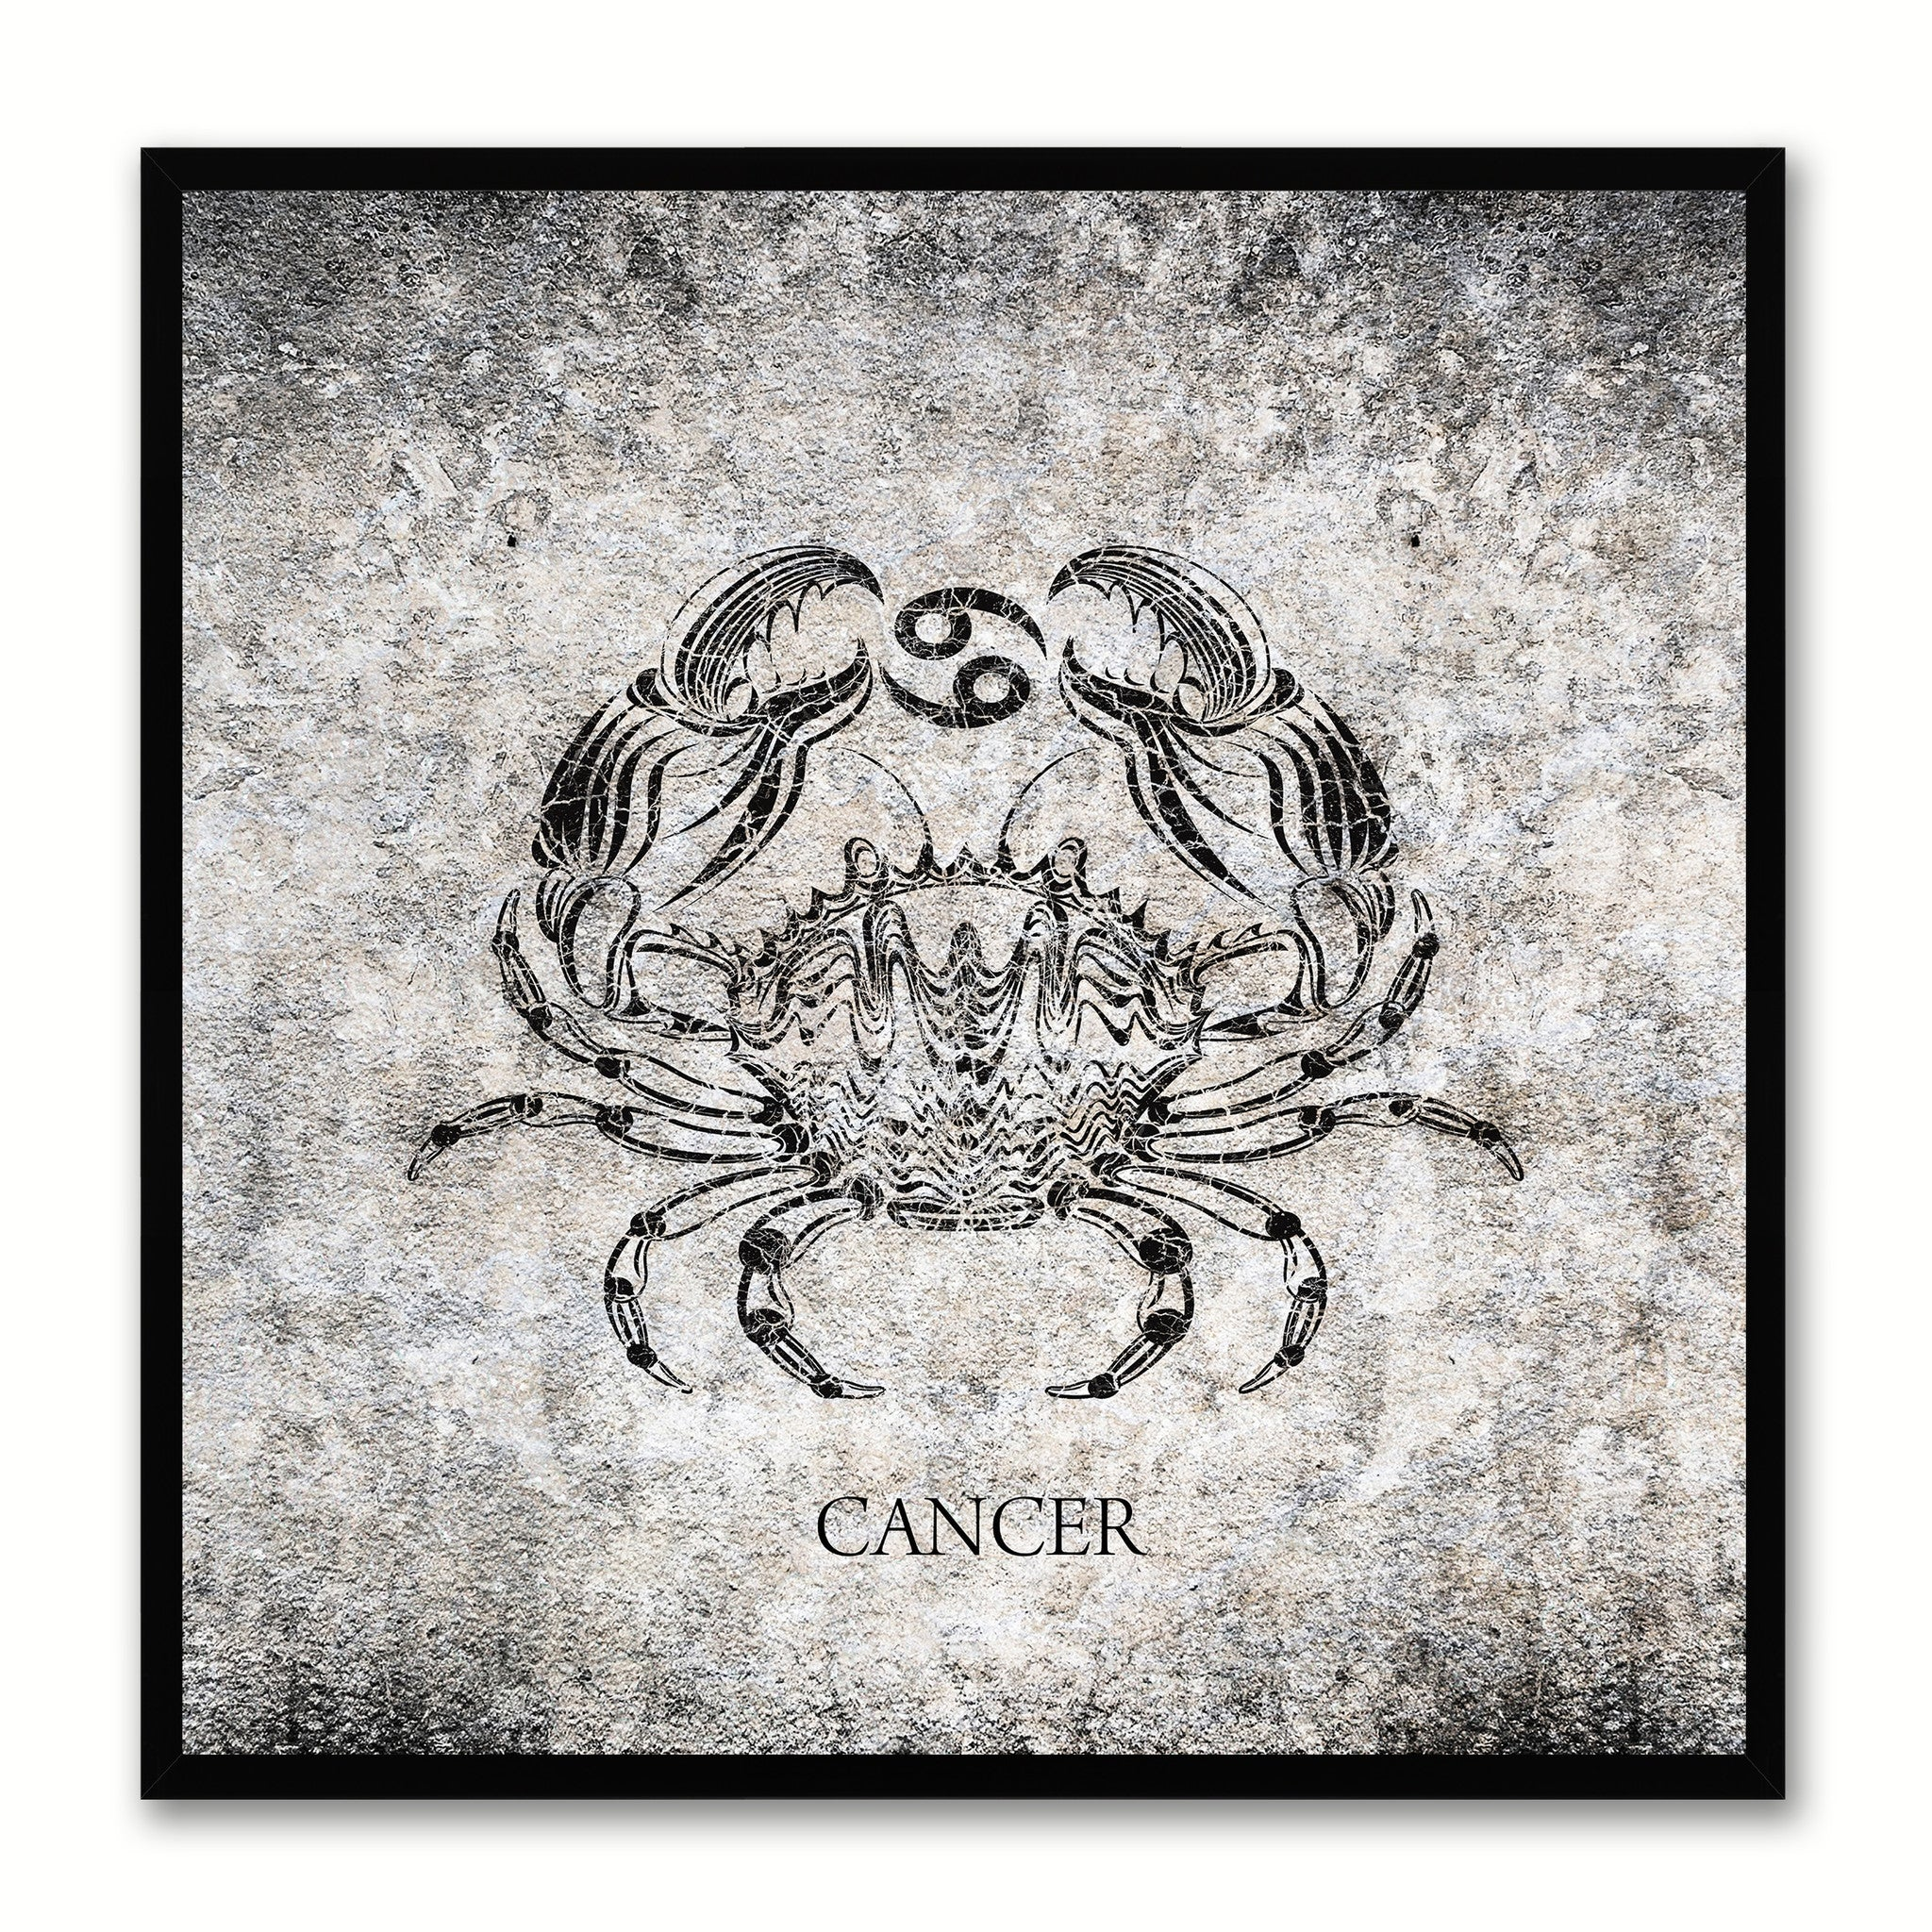 Zodiac Cancer Horoscope Black Canvas Print, Black Custom Frame